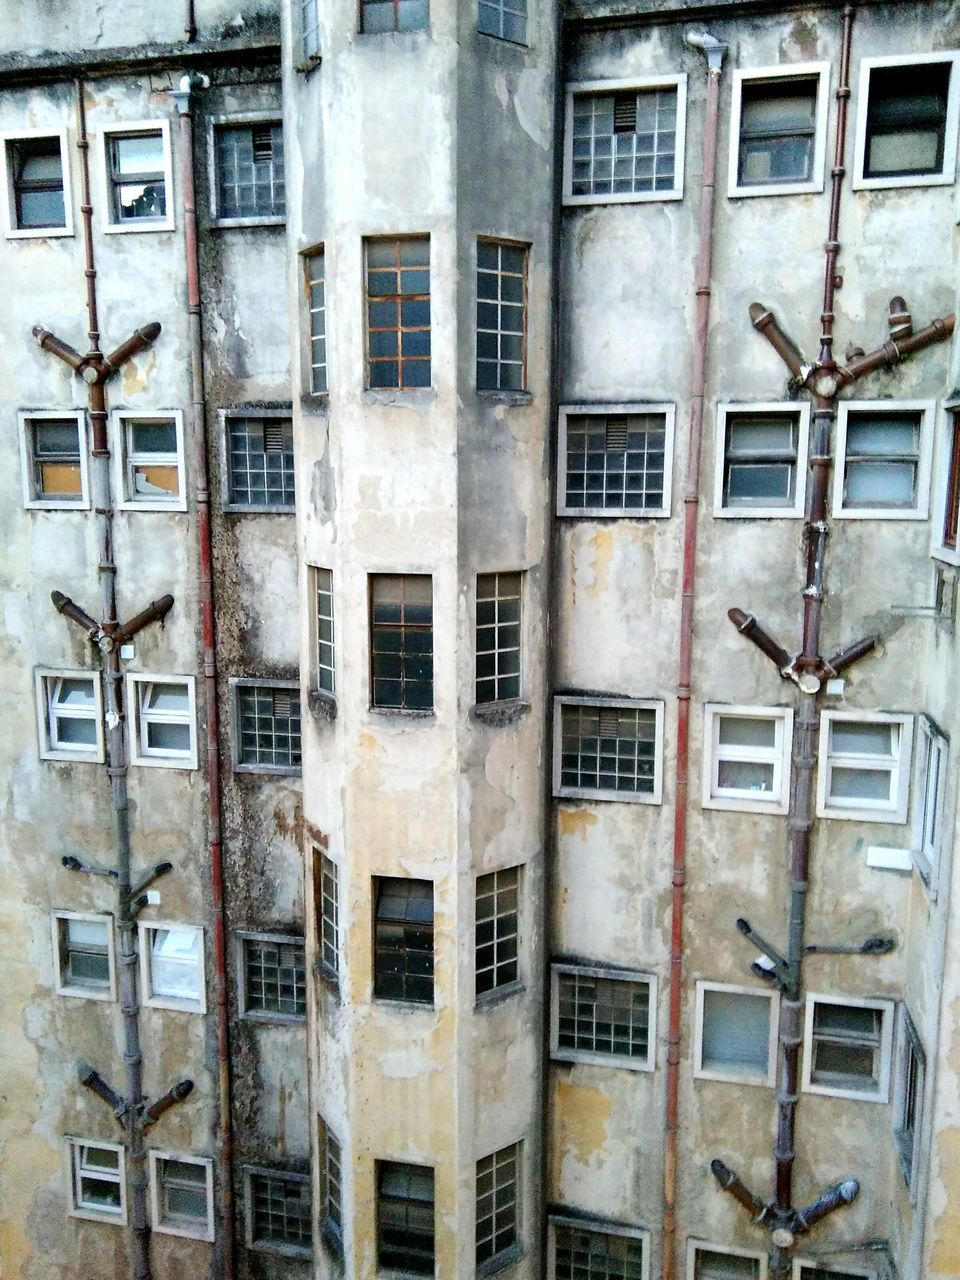 window, building exterior, architecture, no people, built structure, day, abandoned, outdoors, residential building, bird, backgrounds, large group of animals, close-up